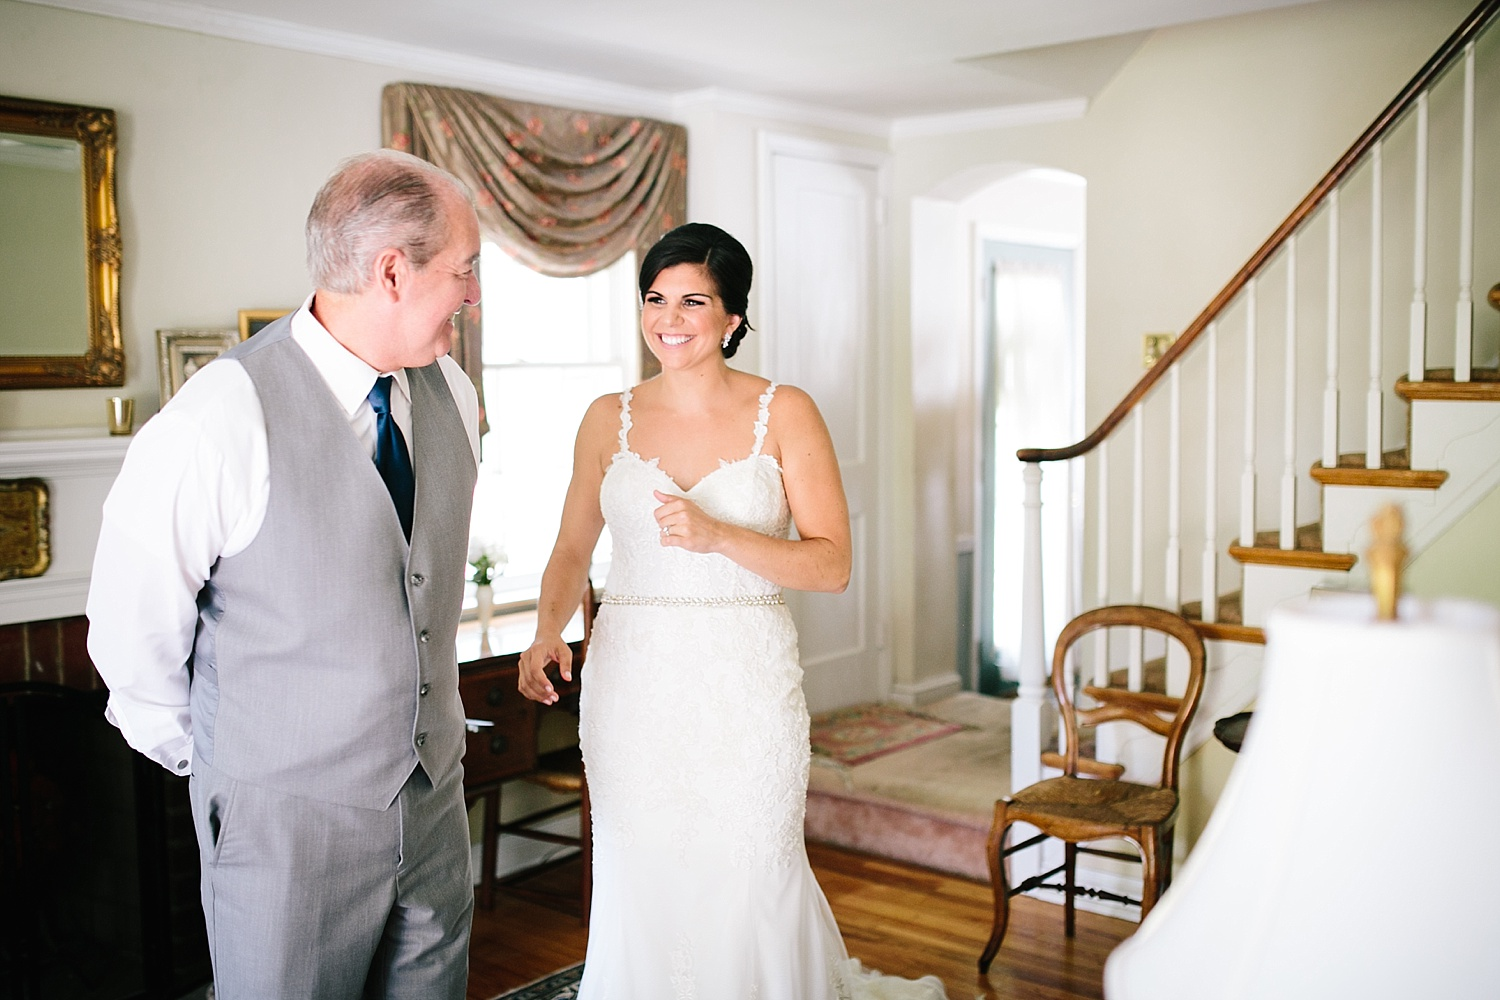 emilyandjoe_bluebell_countryclub_philadelphia_wedding_image033.jpg